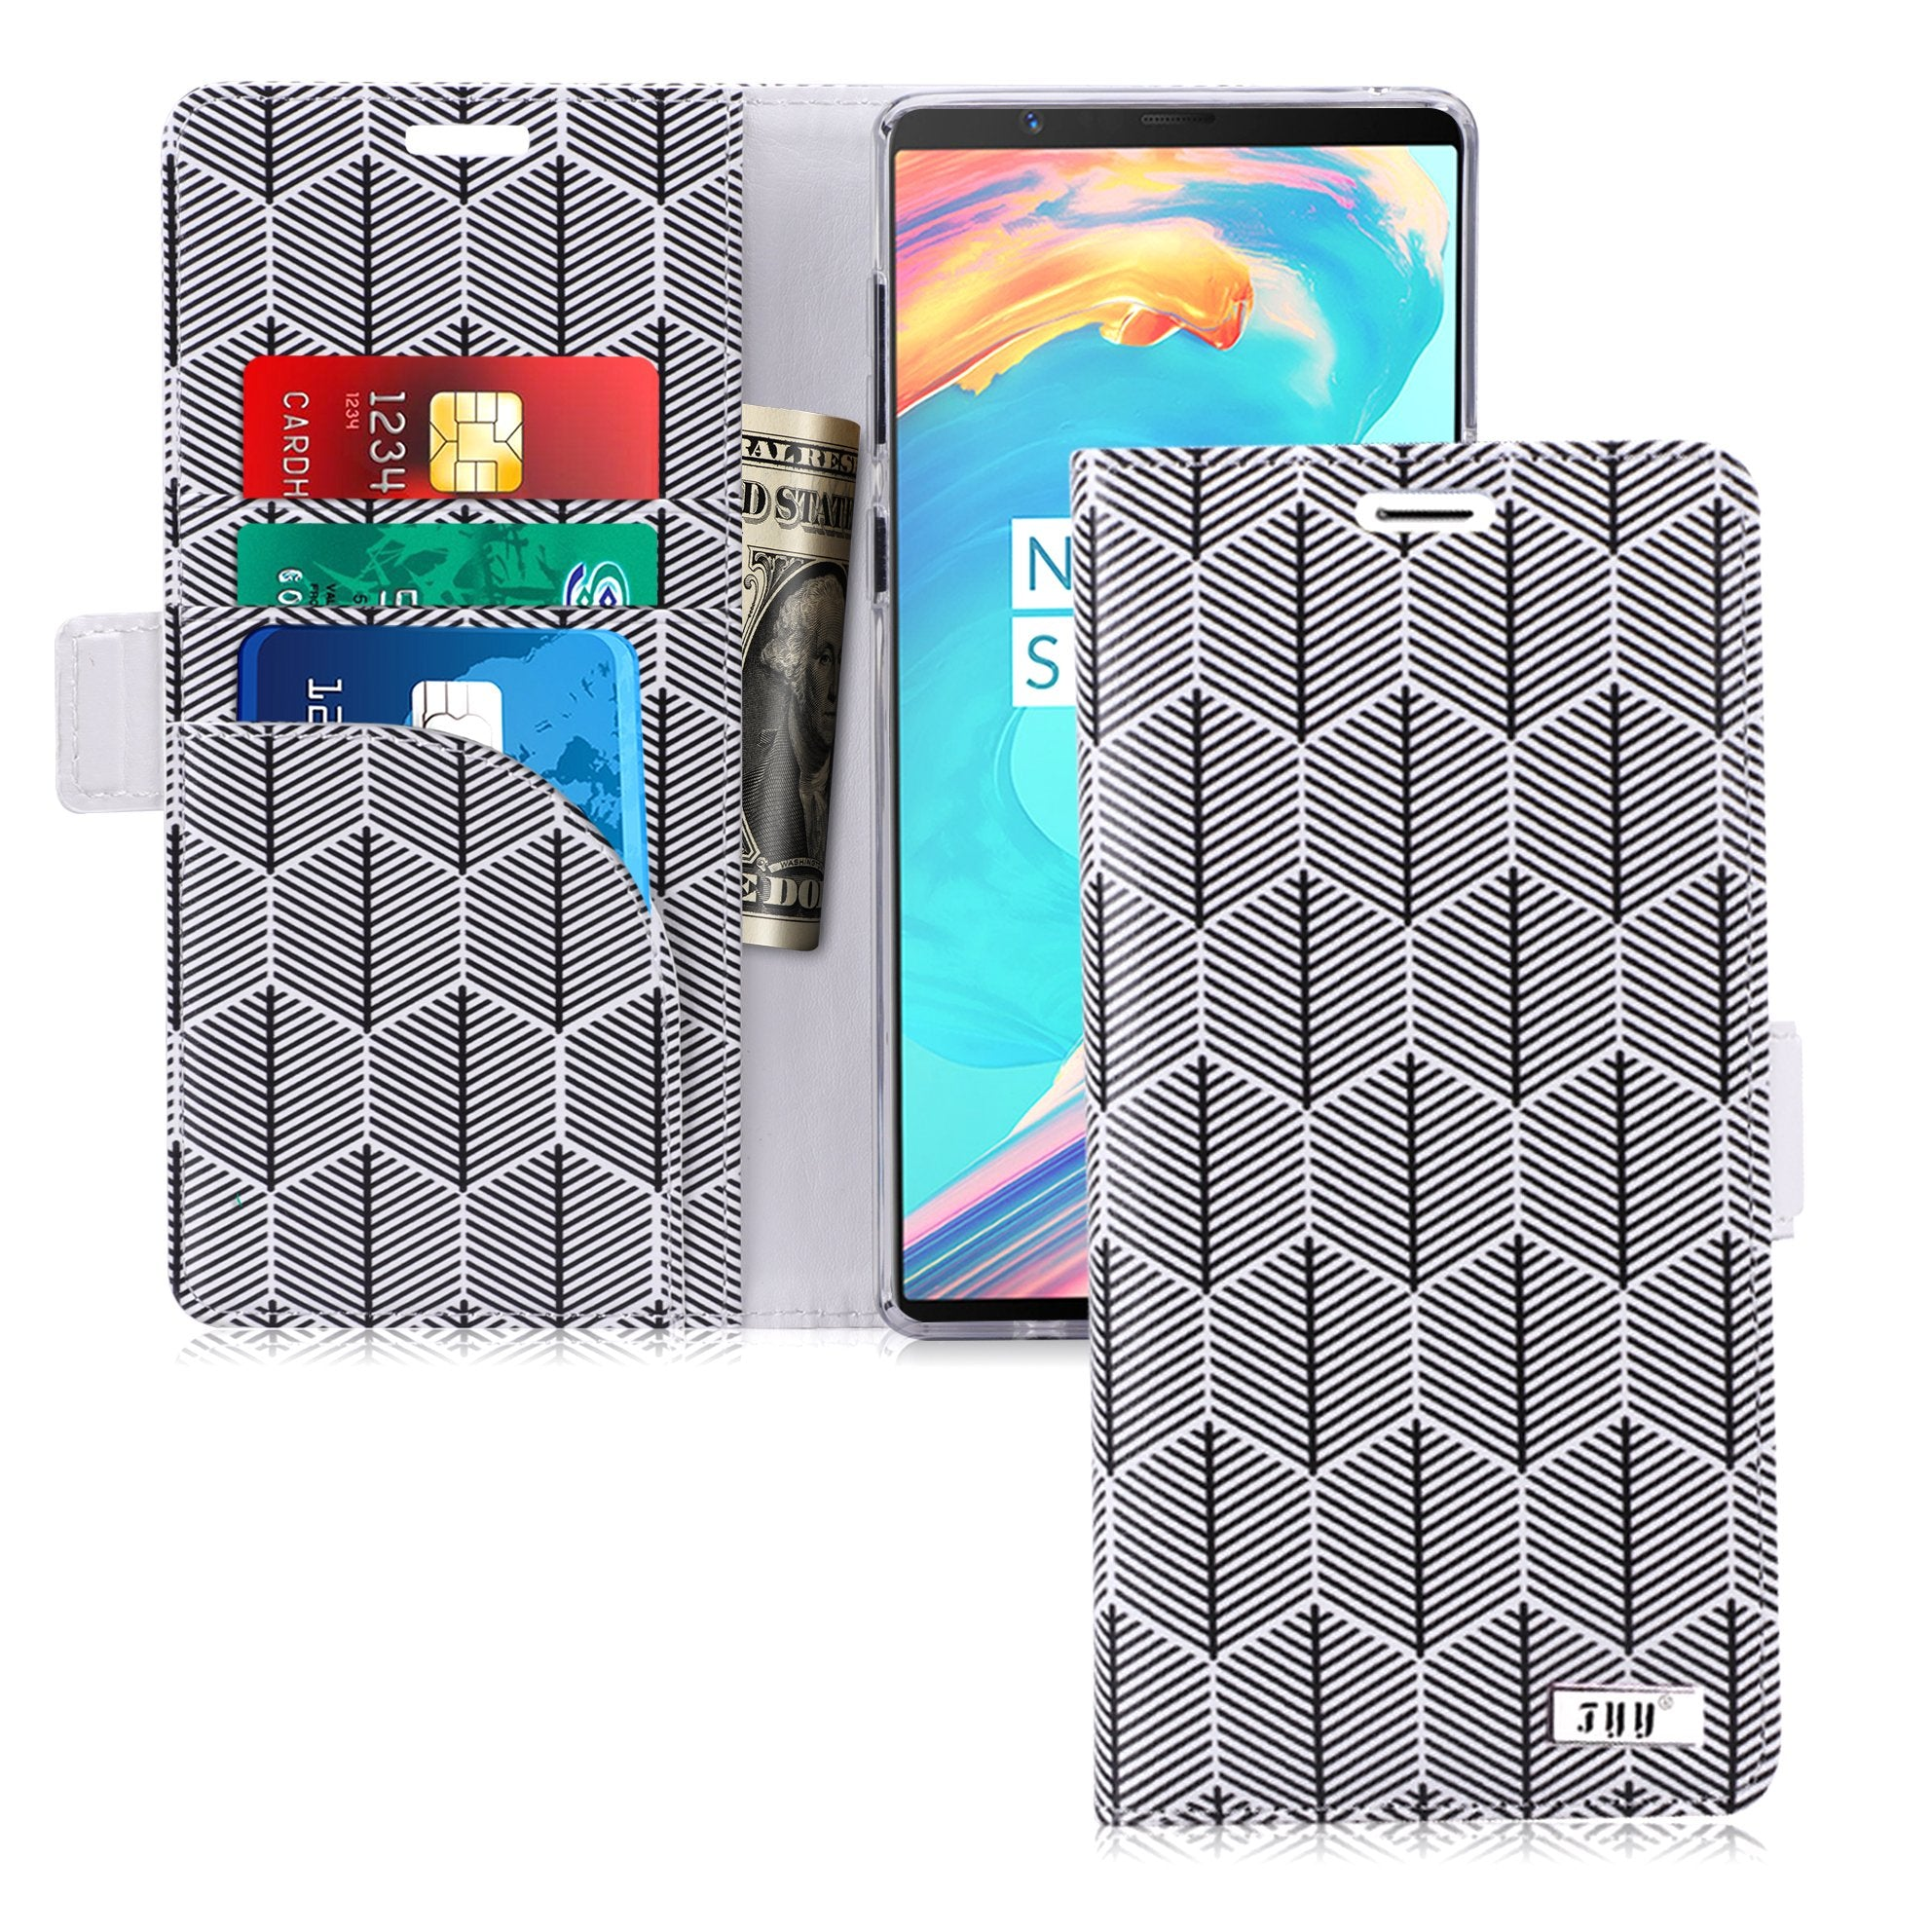 Handmade Wallet Case for Galaxy Note 8 (2017)